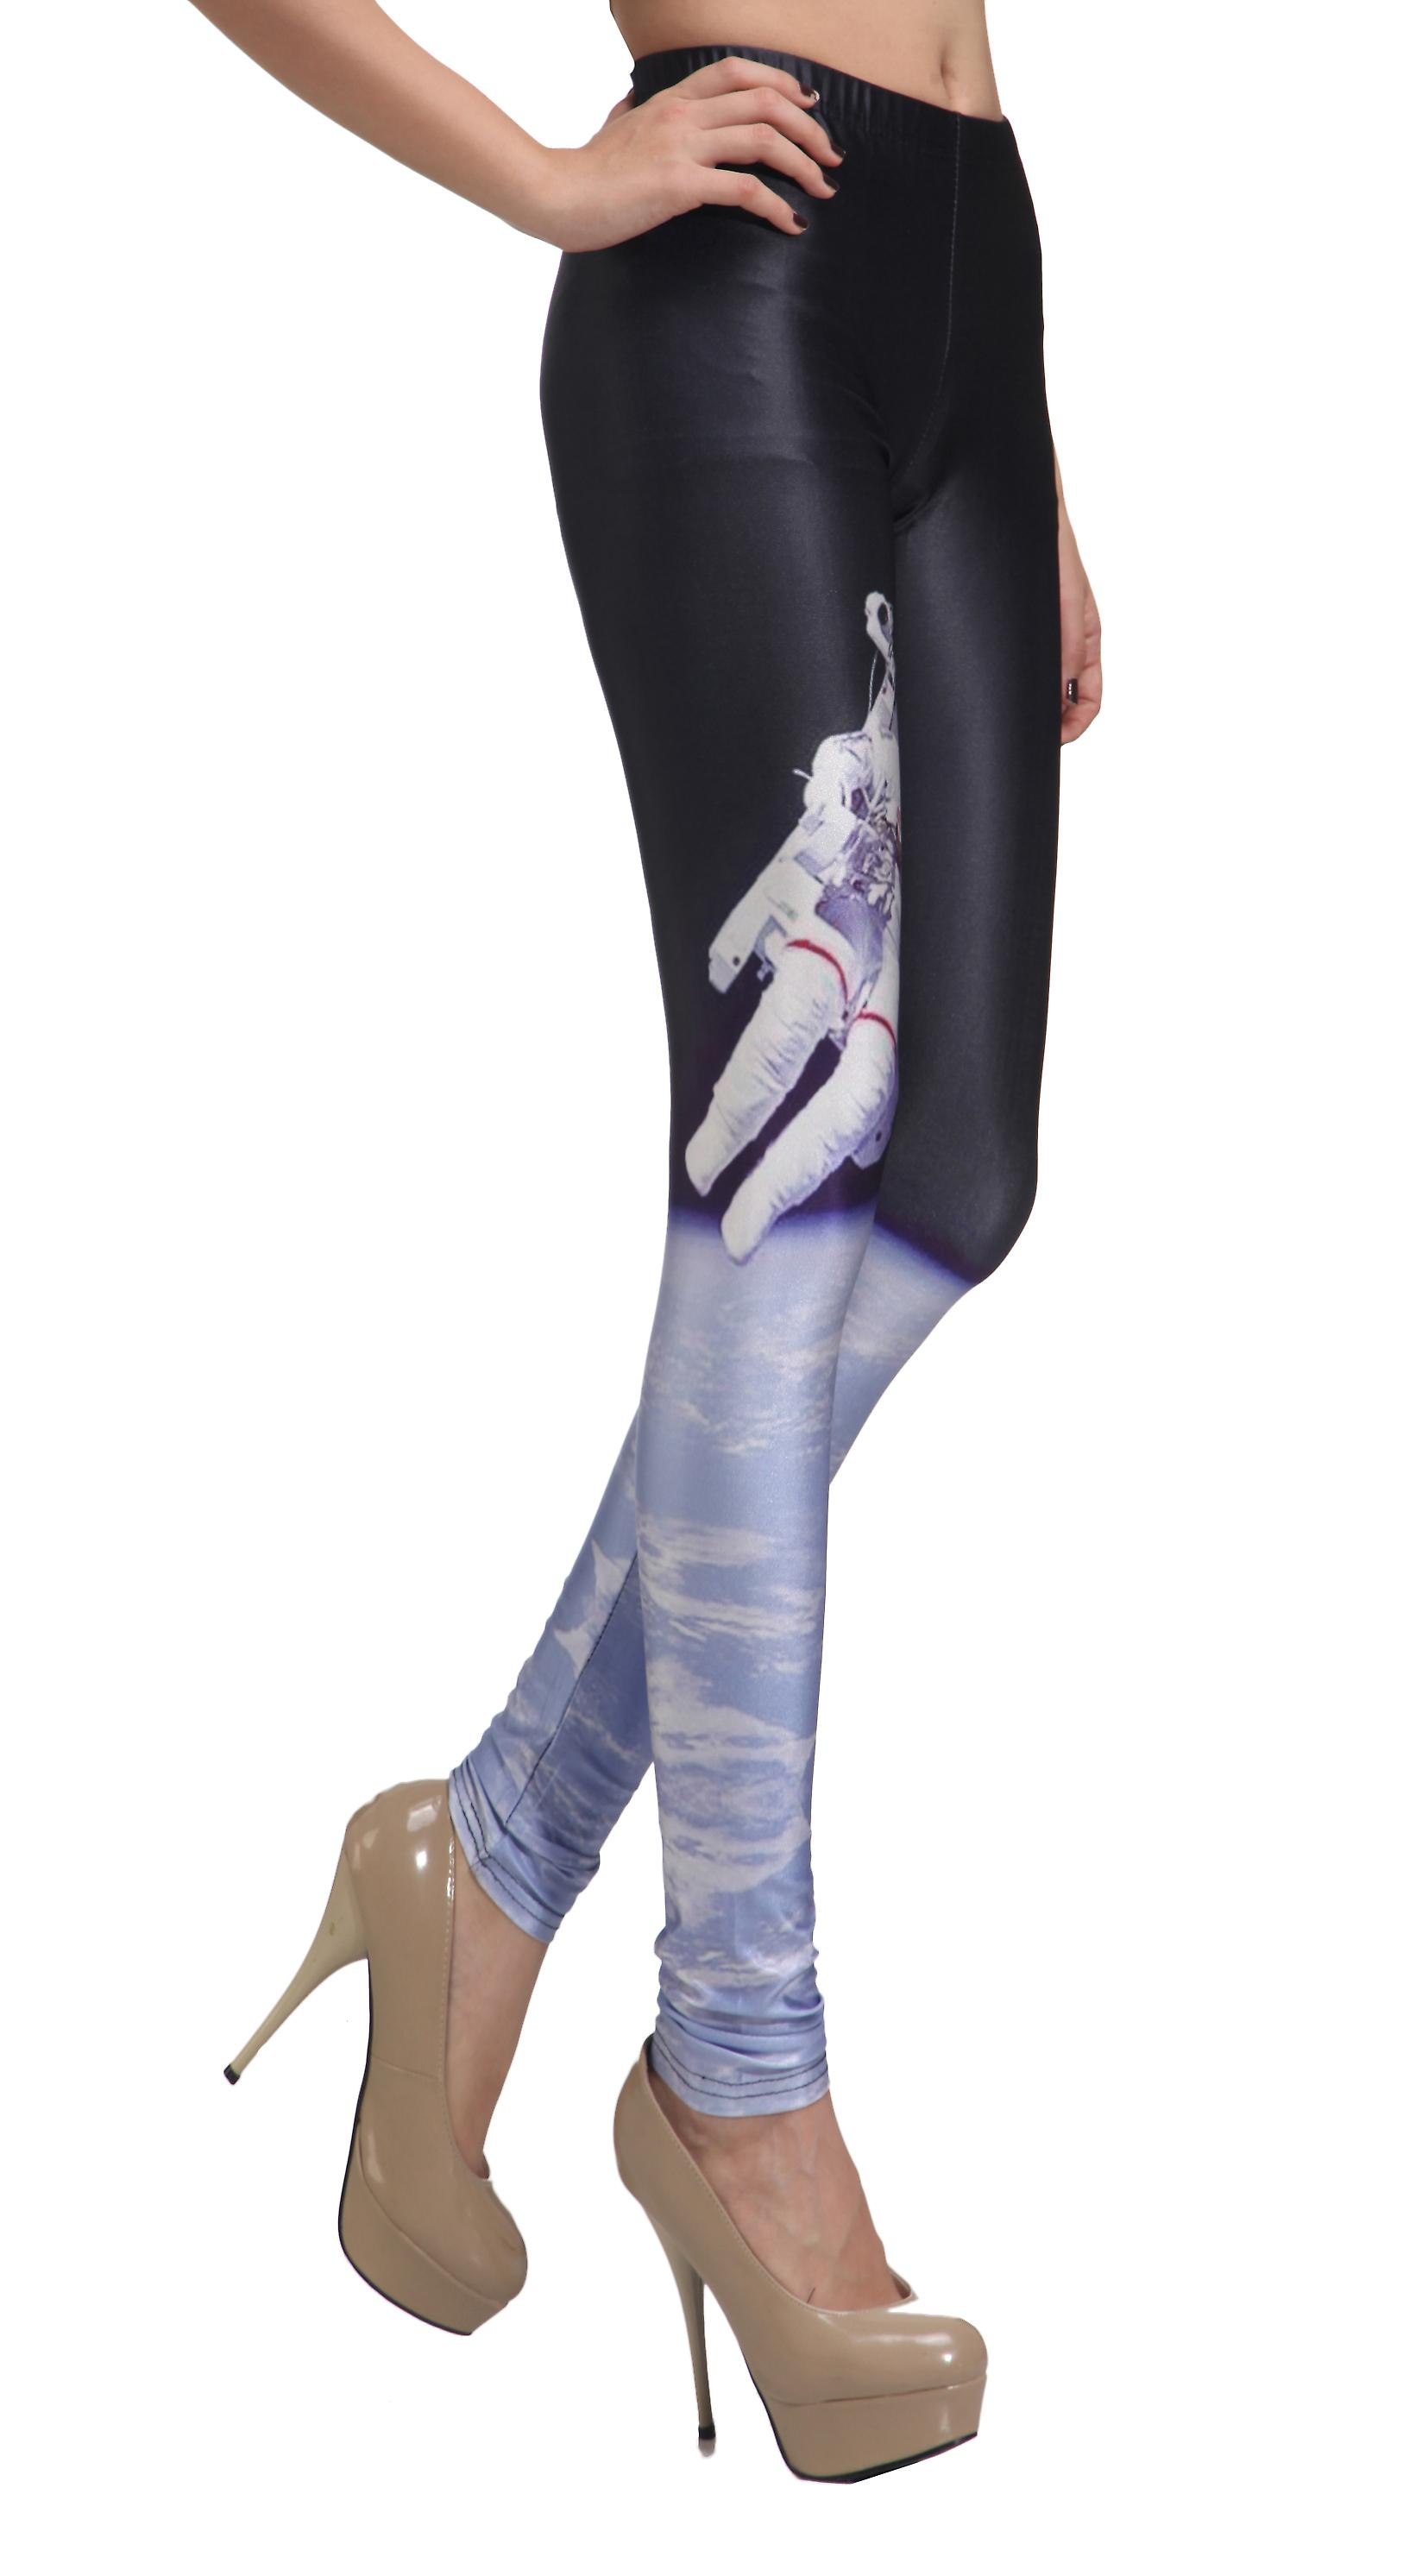 Waooh - Fashion - Legging space and astronaut motif